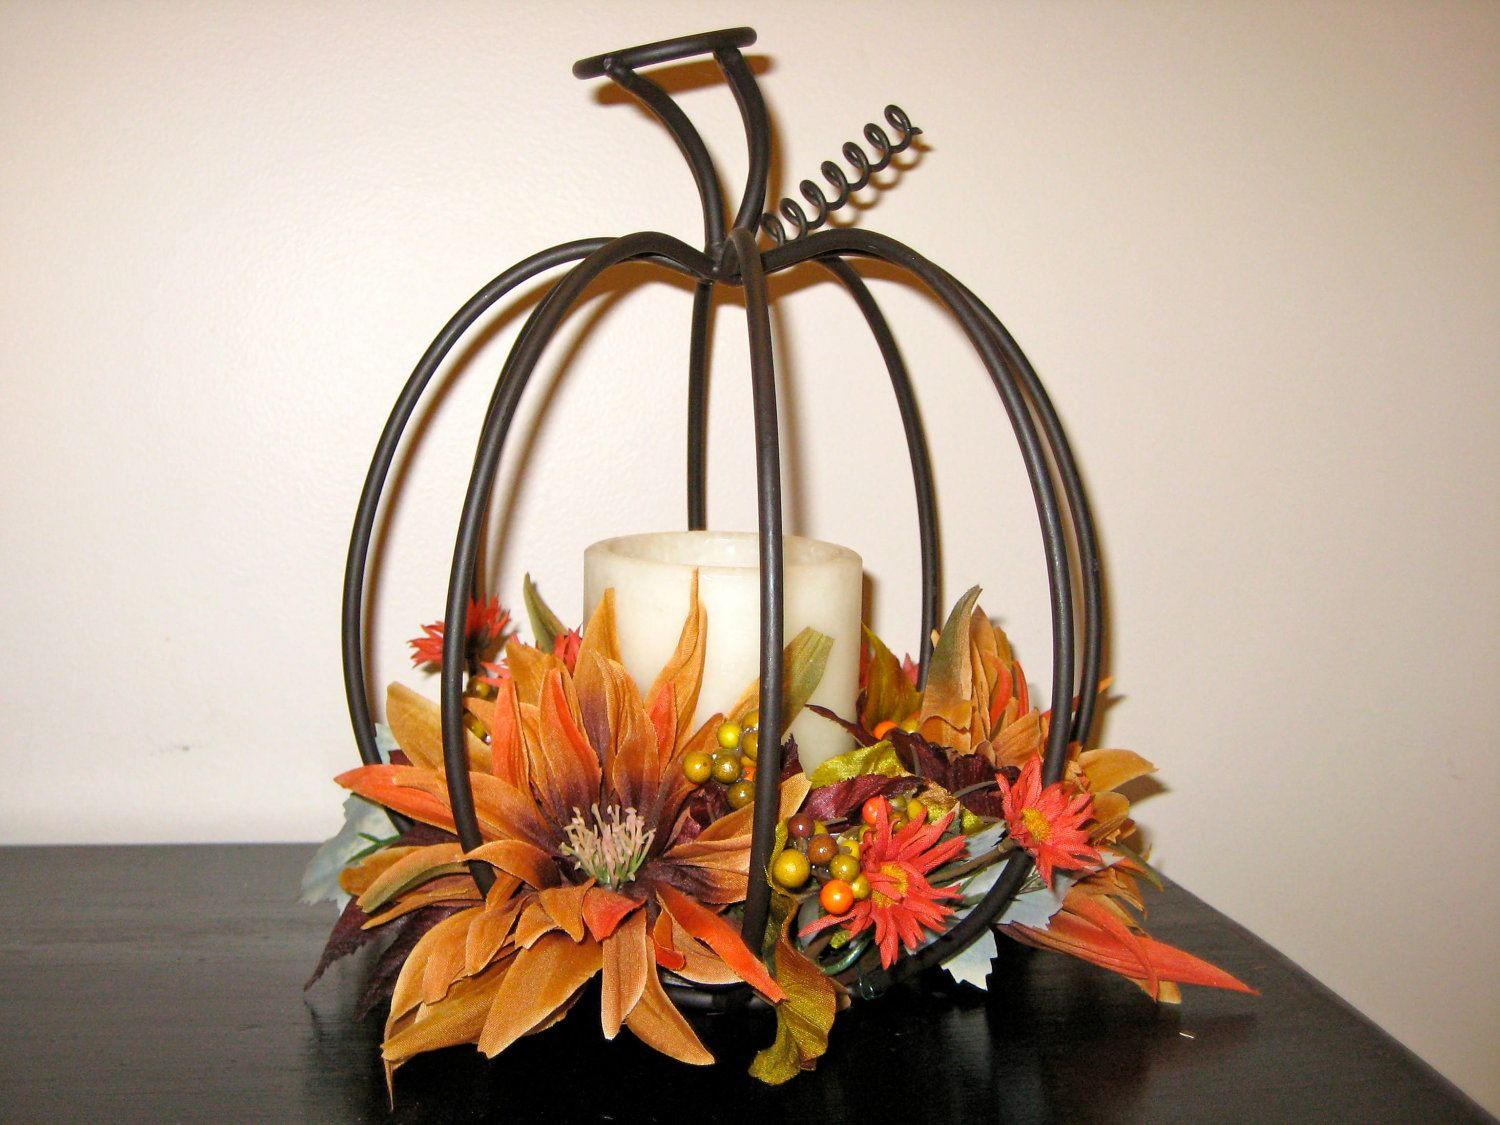 pumpkin vases centerpiece of autumn candle centerpieces item details reviews 4 shipping in autumn candle centerpieces item details reviews 4 shipping policies